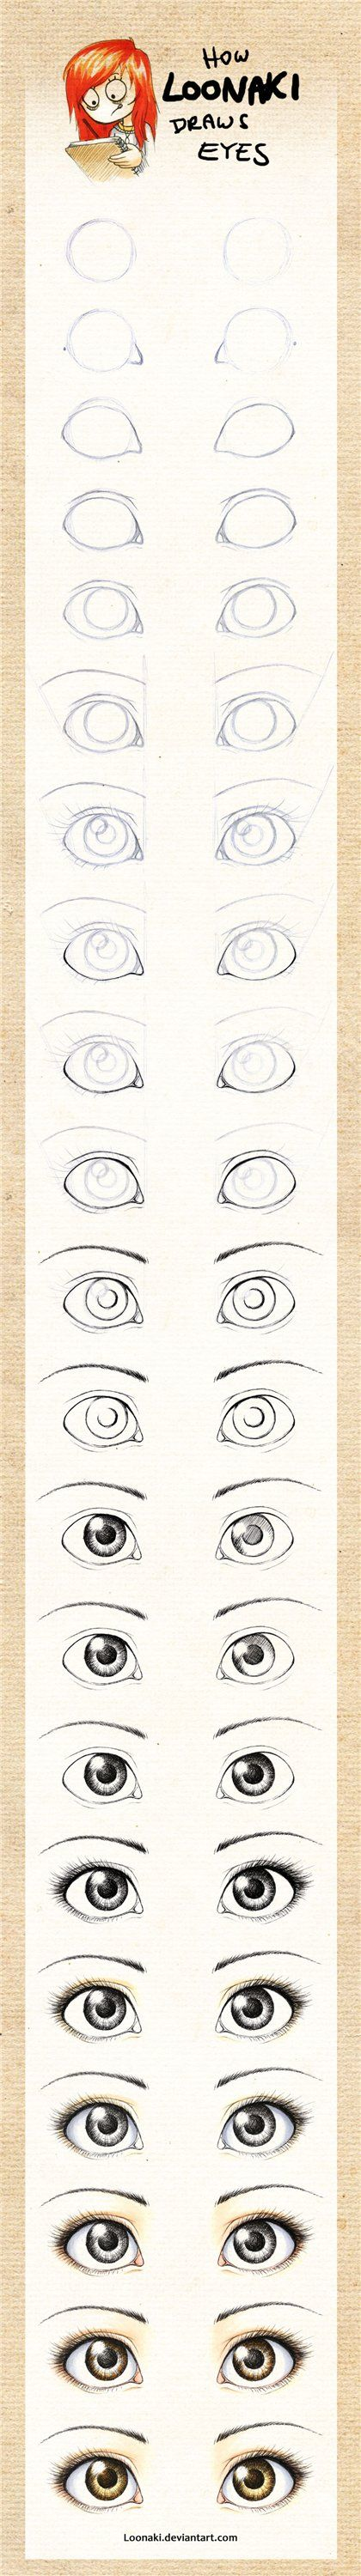 How to drawing eyes: Howtodraw, Drawing Eyes, Animal Eye, Cartoon Eye, Things, Drawings Tutorials, Draw Eyes, Eye Tutorials, How To Drawings Eye